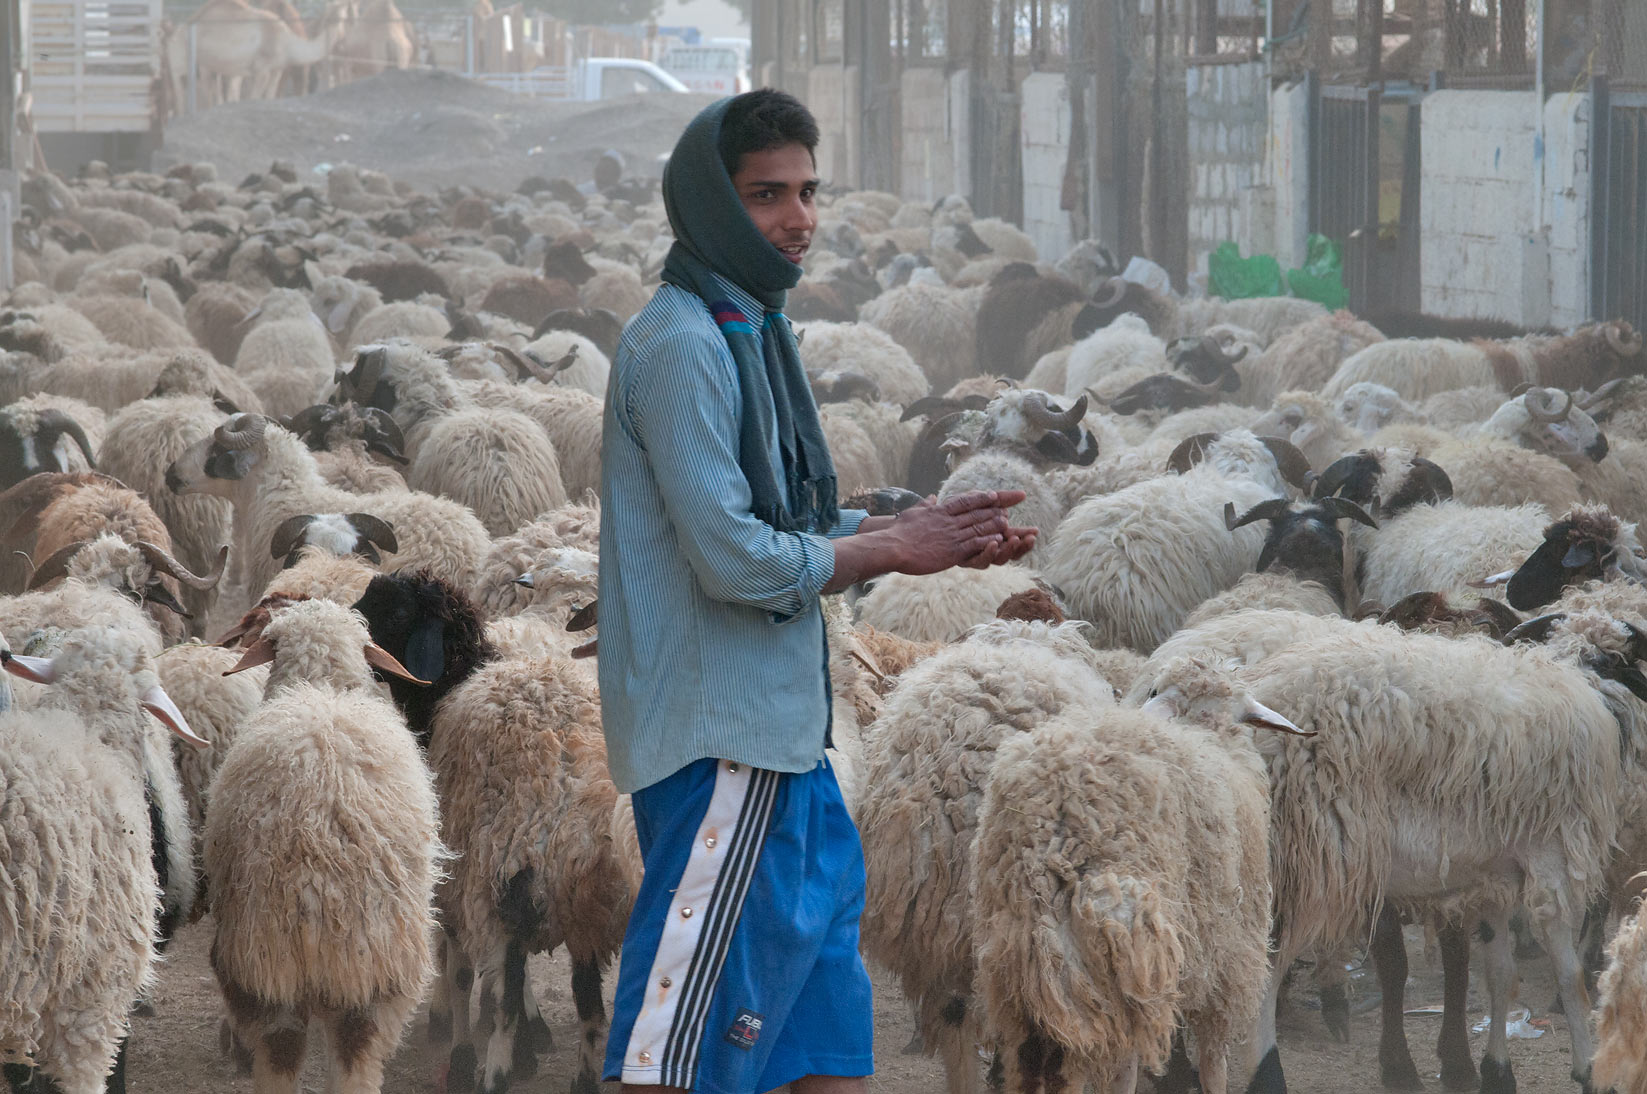 Herdsman with Australian sheep in Animal Market, Wholesale Market area. Doha, Qatar